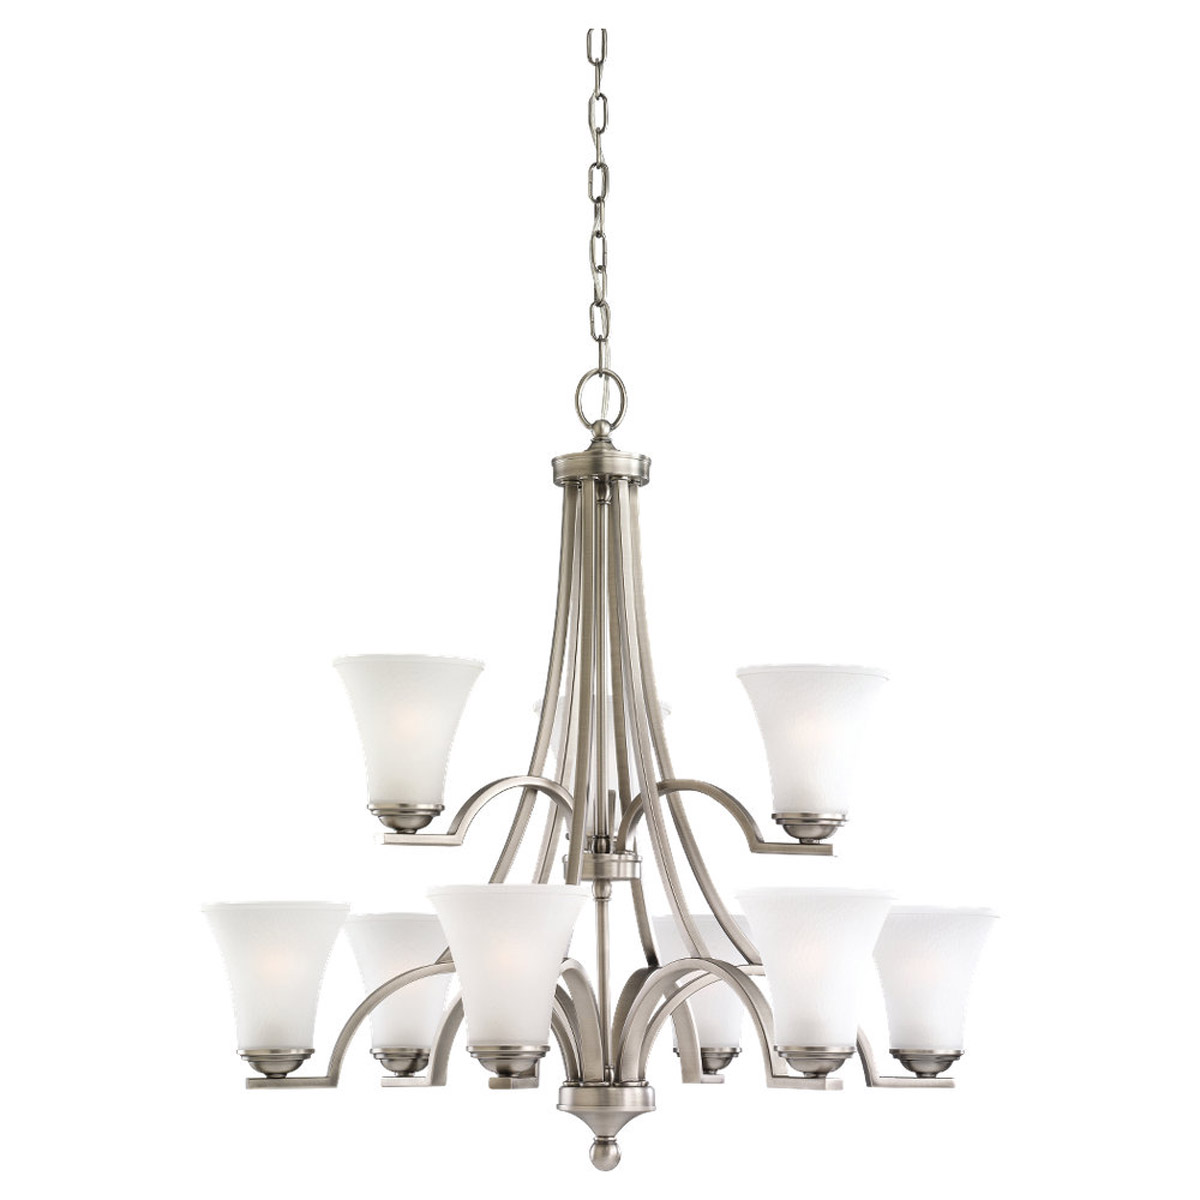 Sea Gull Somerton 9 Light Chandelier Multi-Tier in Antique Brushed Nickel 31377BLE-965